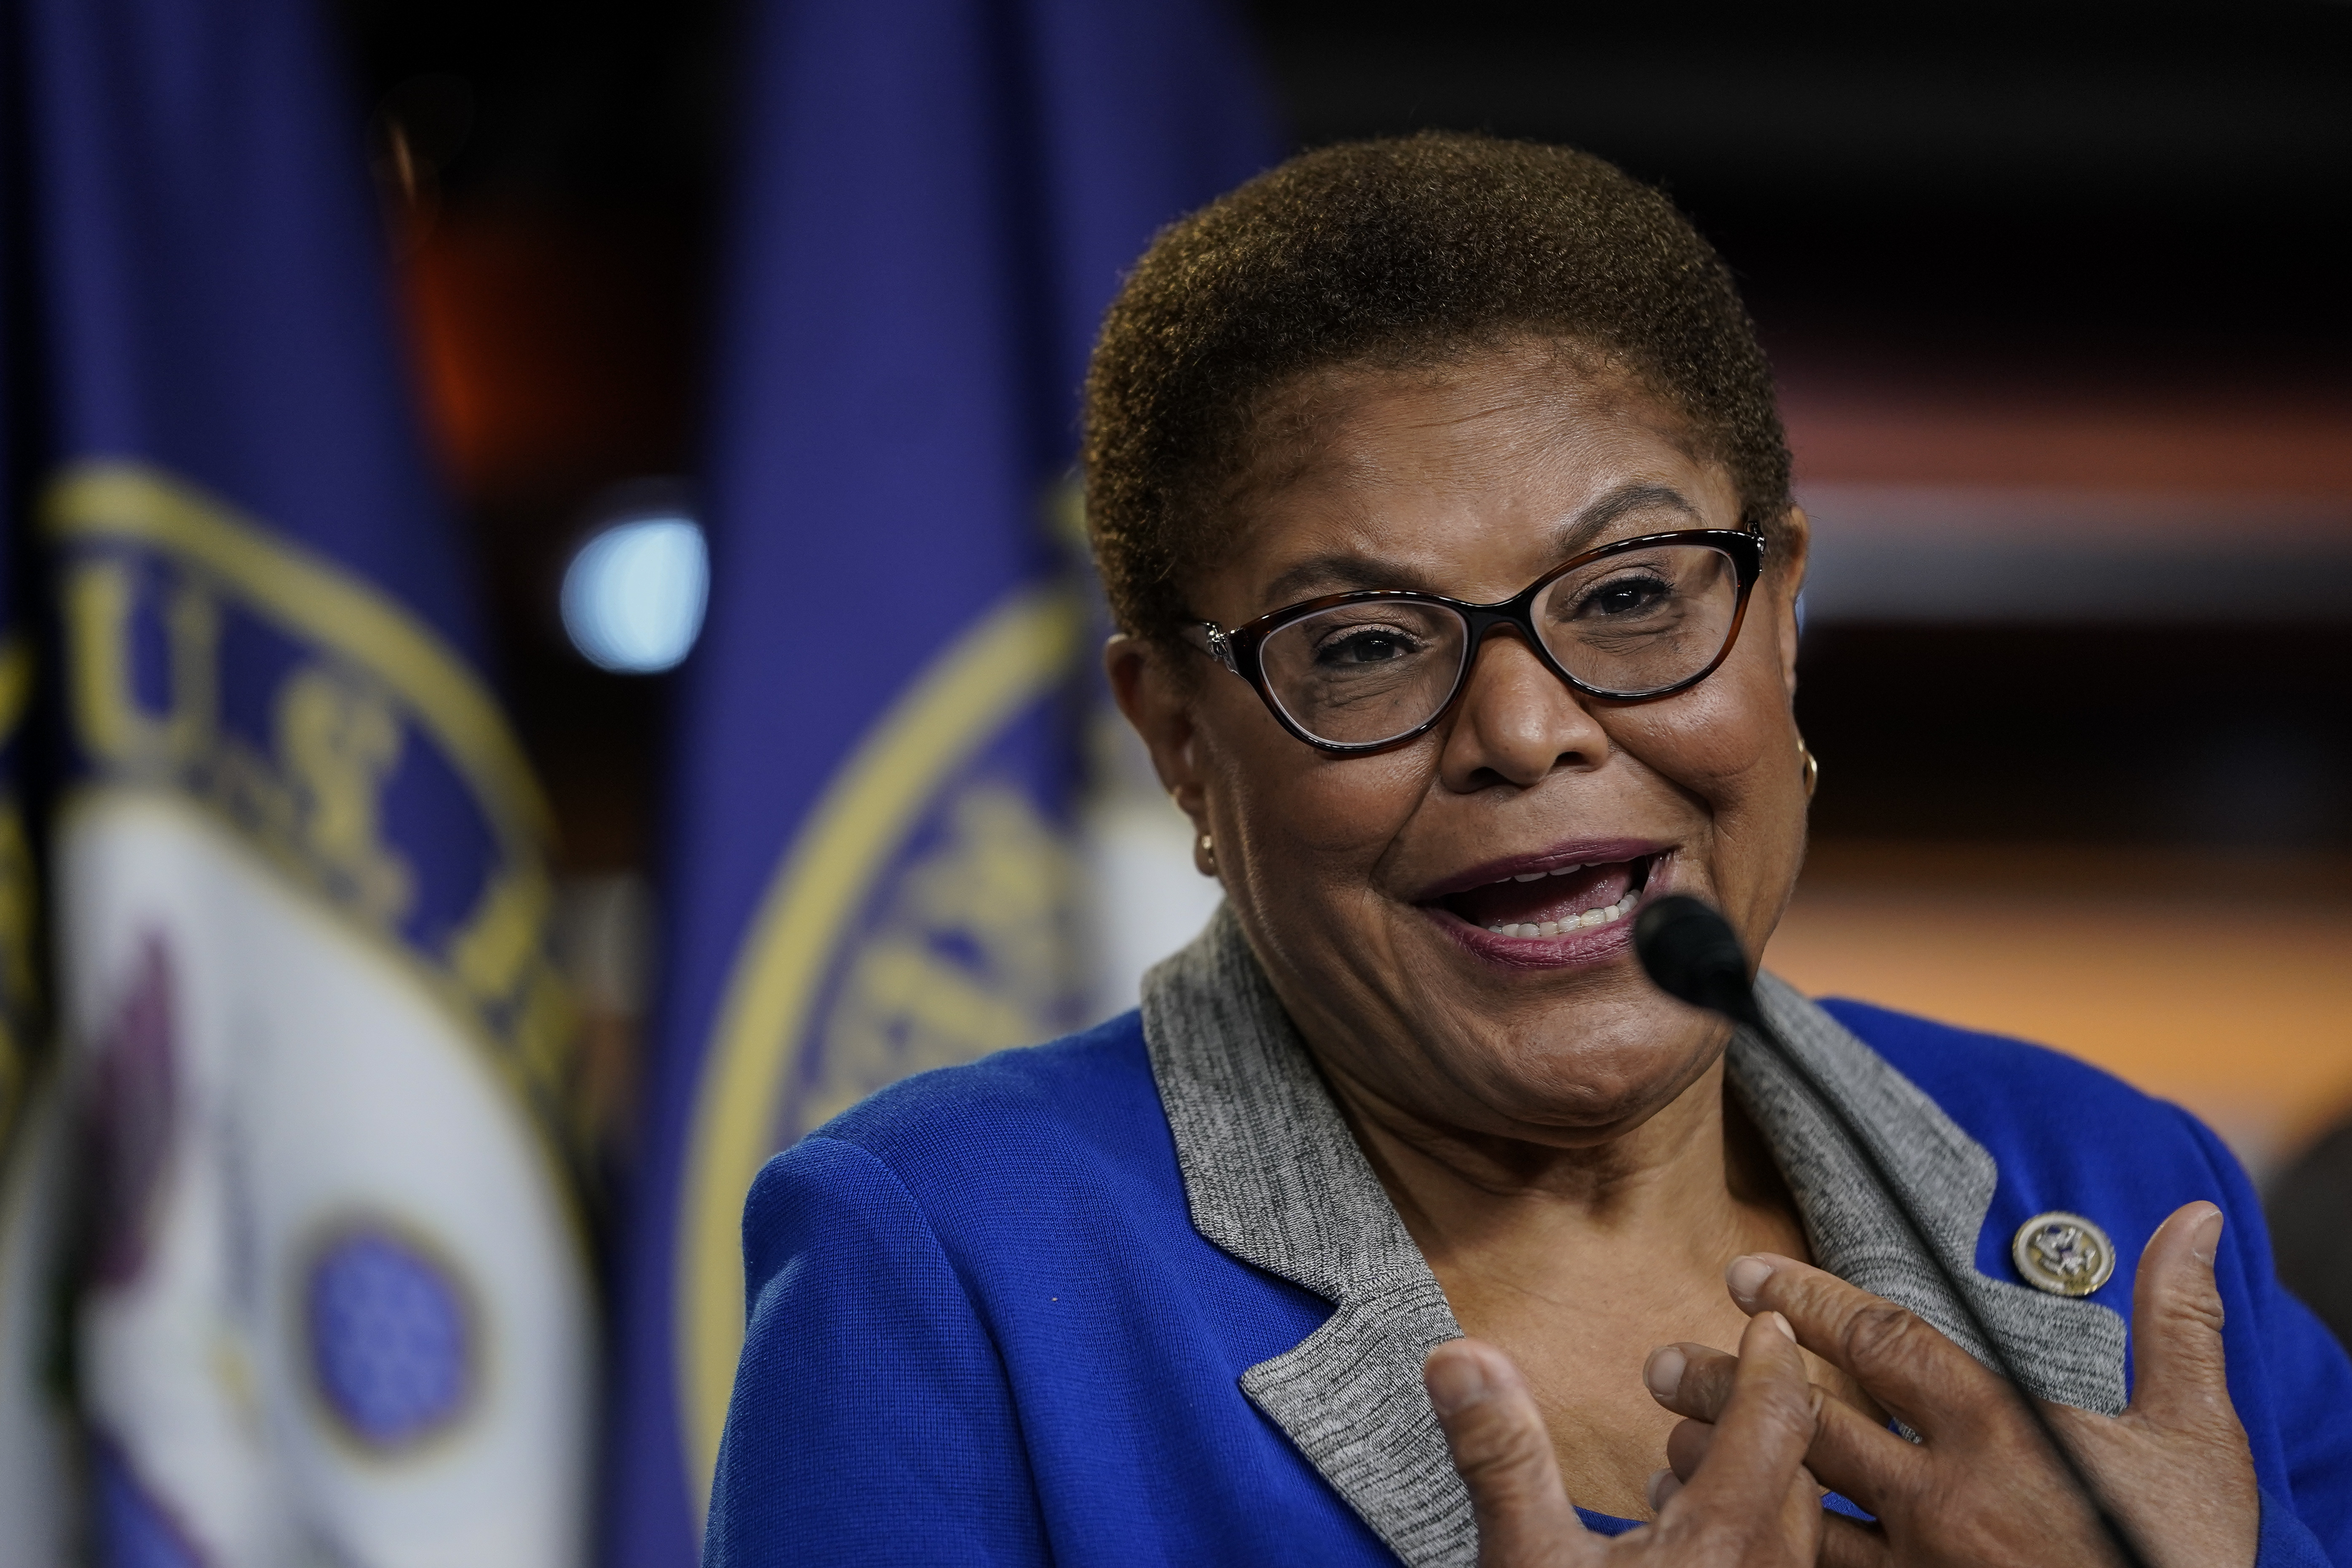 Rep. Karen Bass (D-Calif.) on Capitol Hill in Washington D.C. (Photo by Drew Angerer/Getty Images)